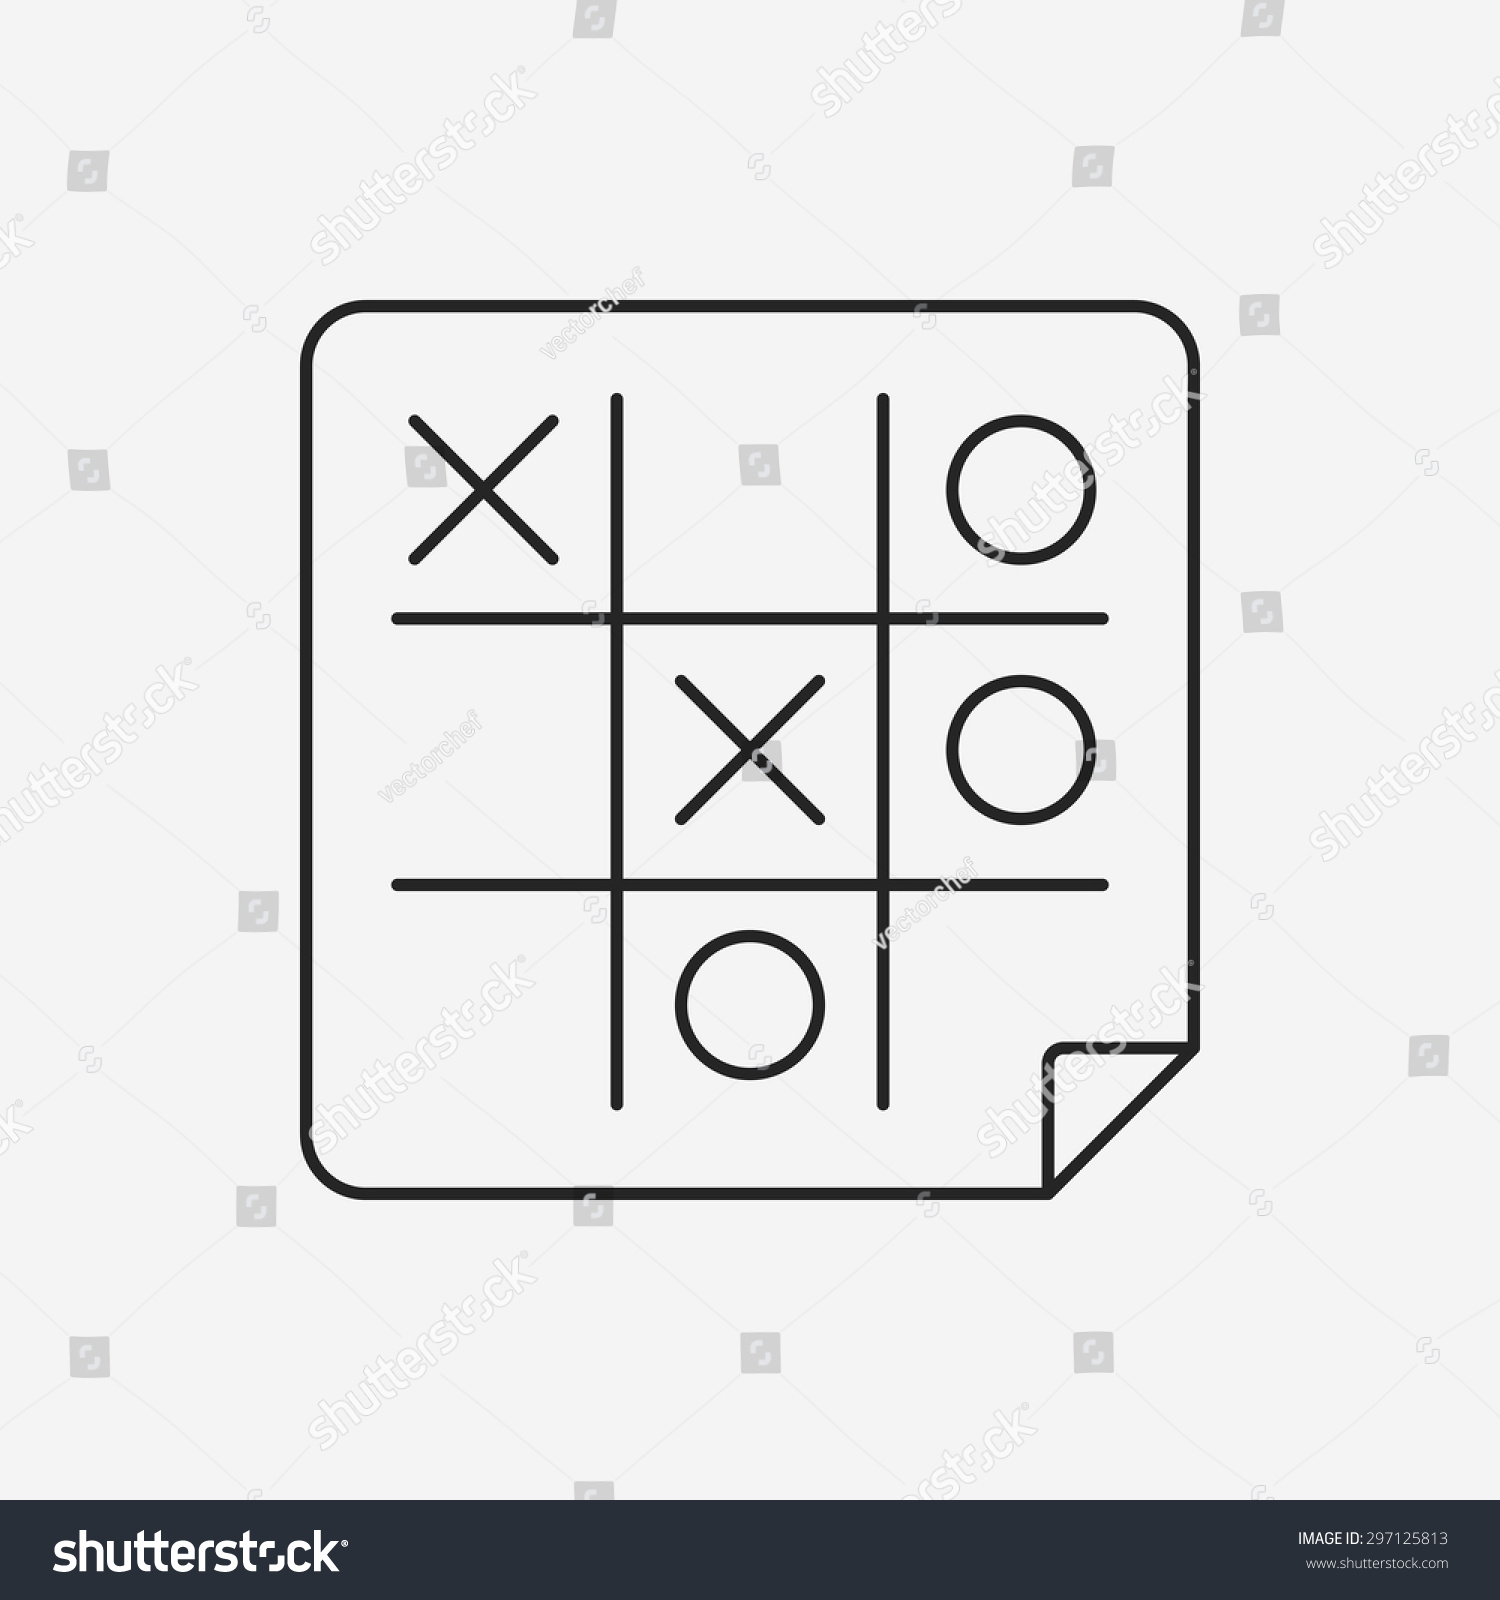 Tic Tac Toe Line Icon Stock Vector 297125813 - Shutterstock